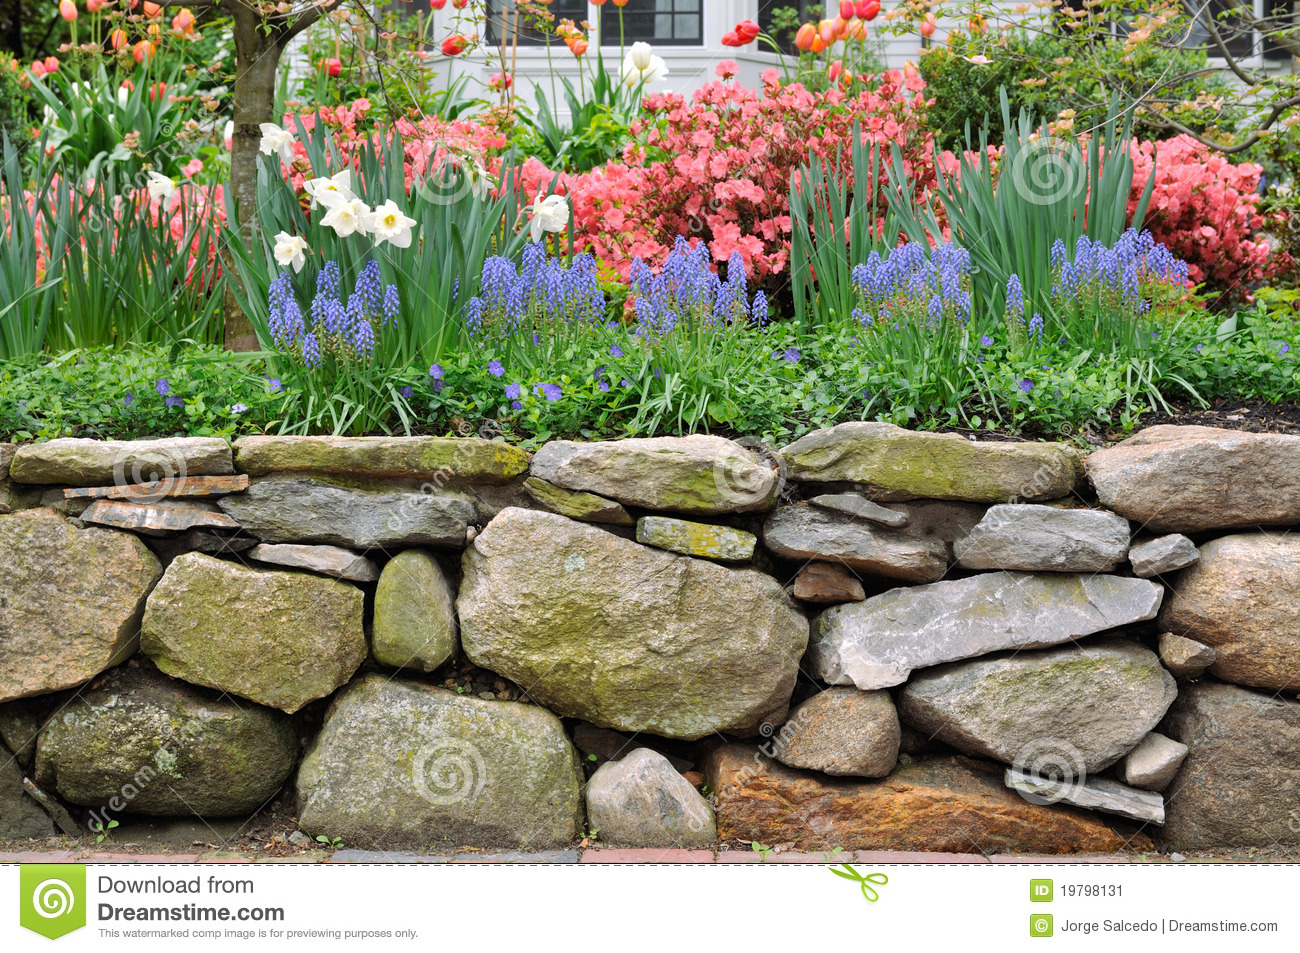 Simple landscaping ideas for front yard - Dry Stone Wall And Colorful Garden Stock Image Image